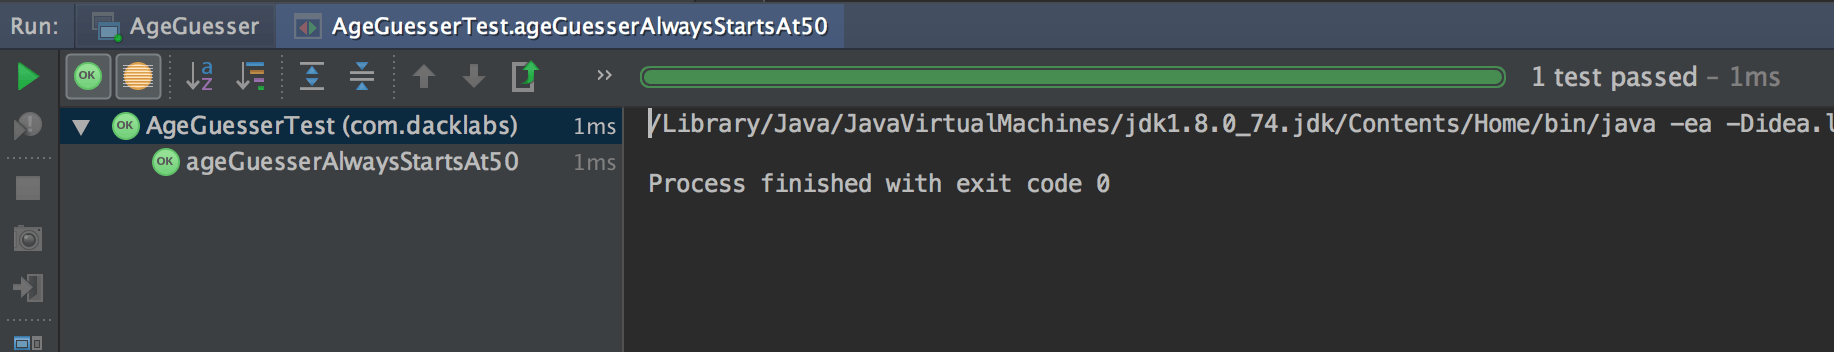 Intellij Test Passed